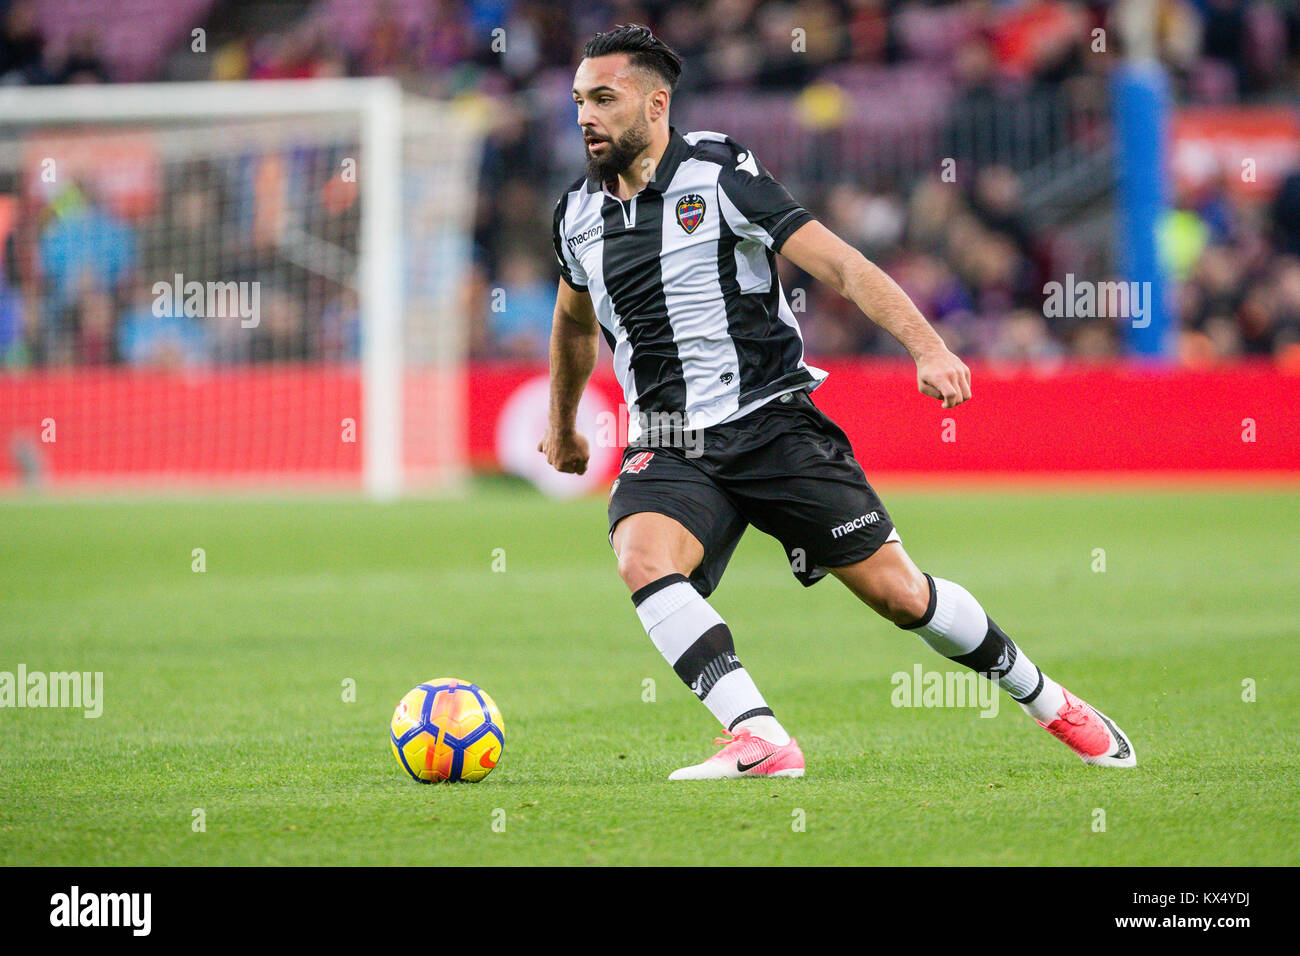 Barcelona, Spain. 07th Jan, 2018. Levante UD midfielder Ivi (14) during the match between FC Barcelona against Levante - Stock Image